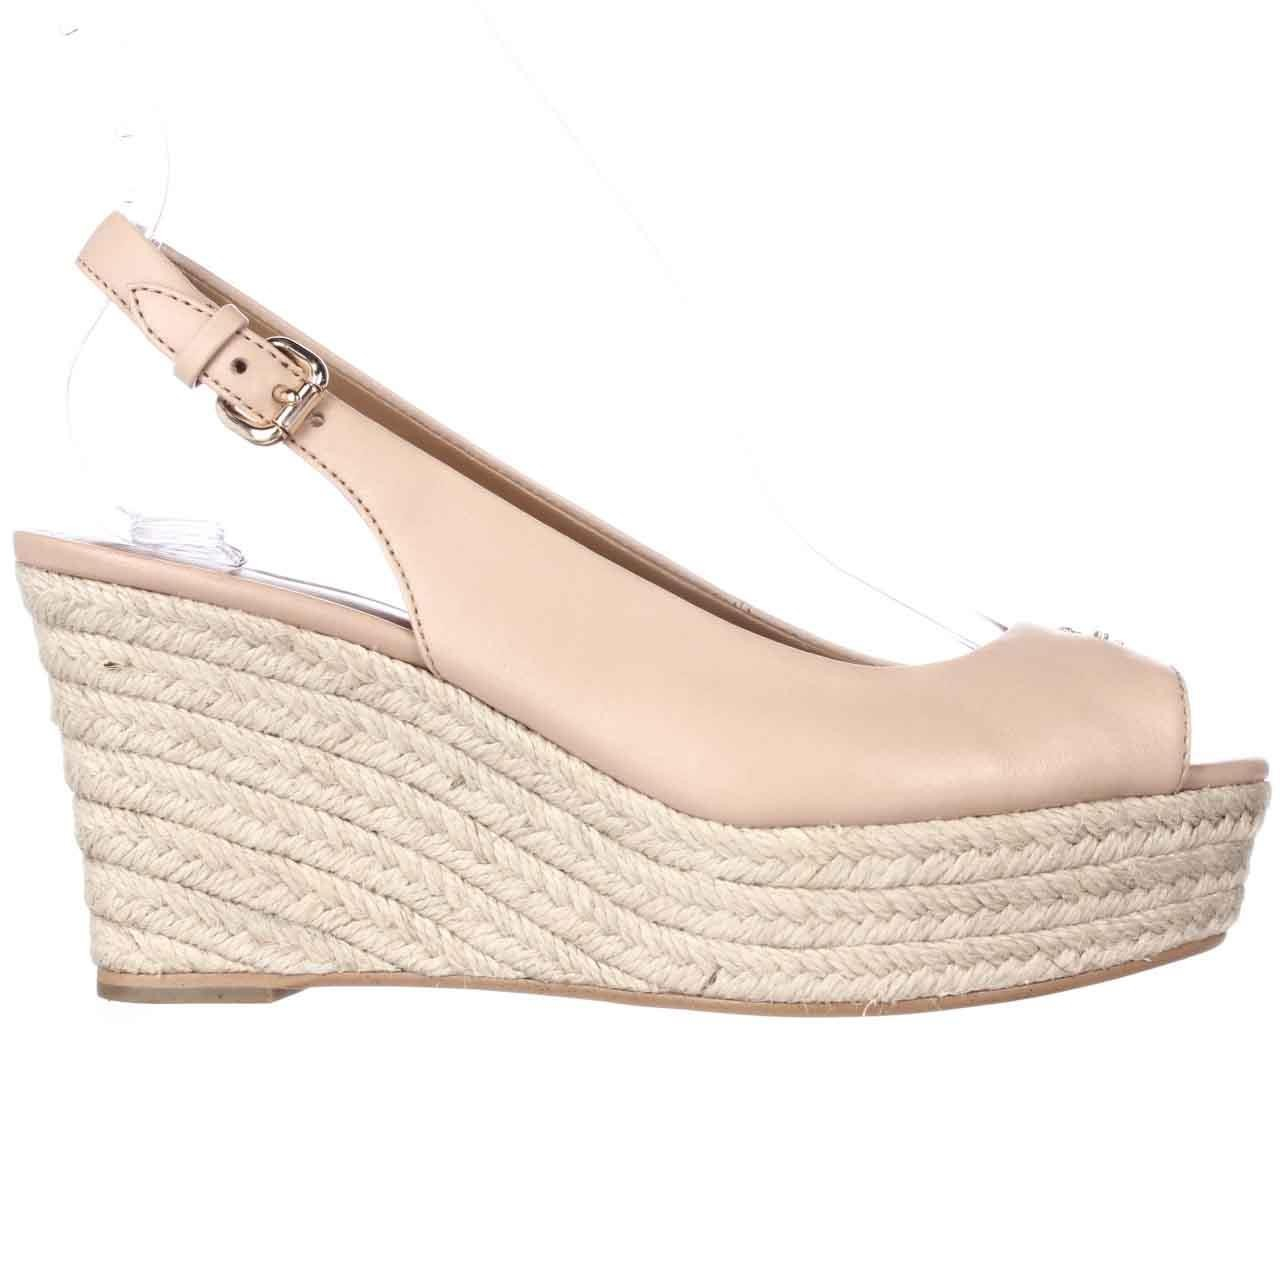 Coach Ferry Peep Toe Slingback Espadrille Wedge Sandals Lyst